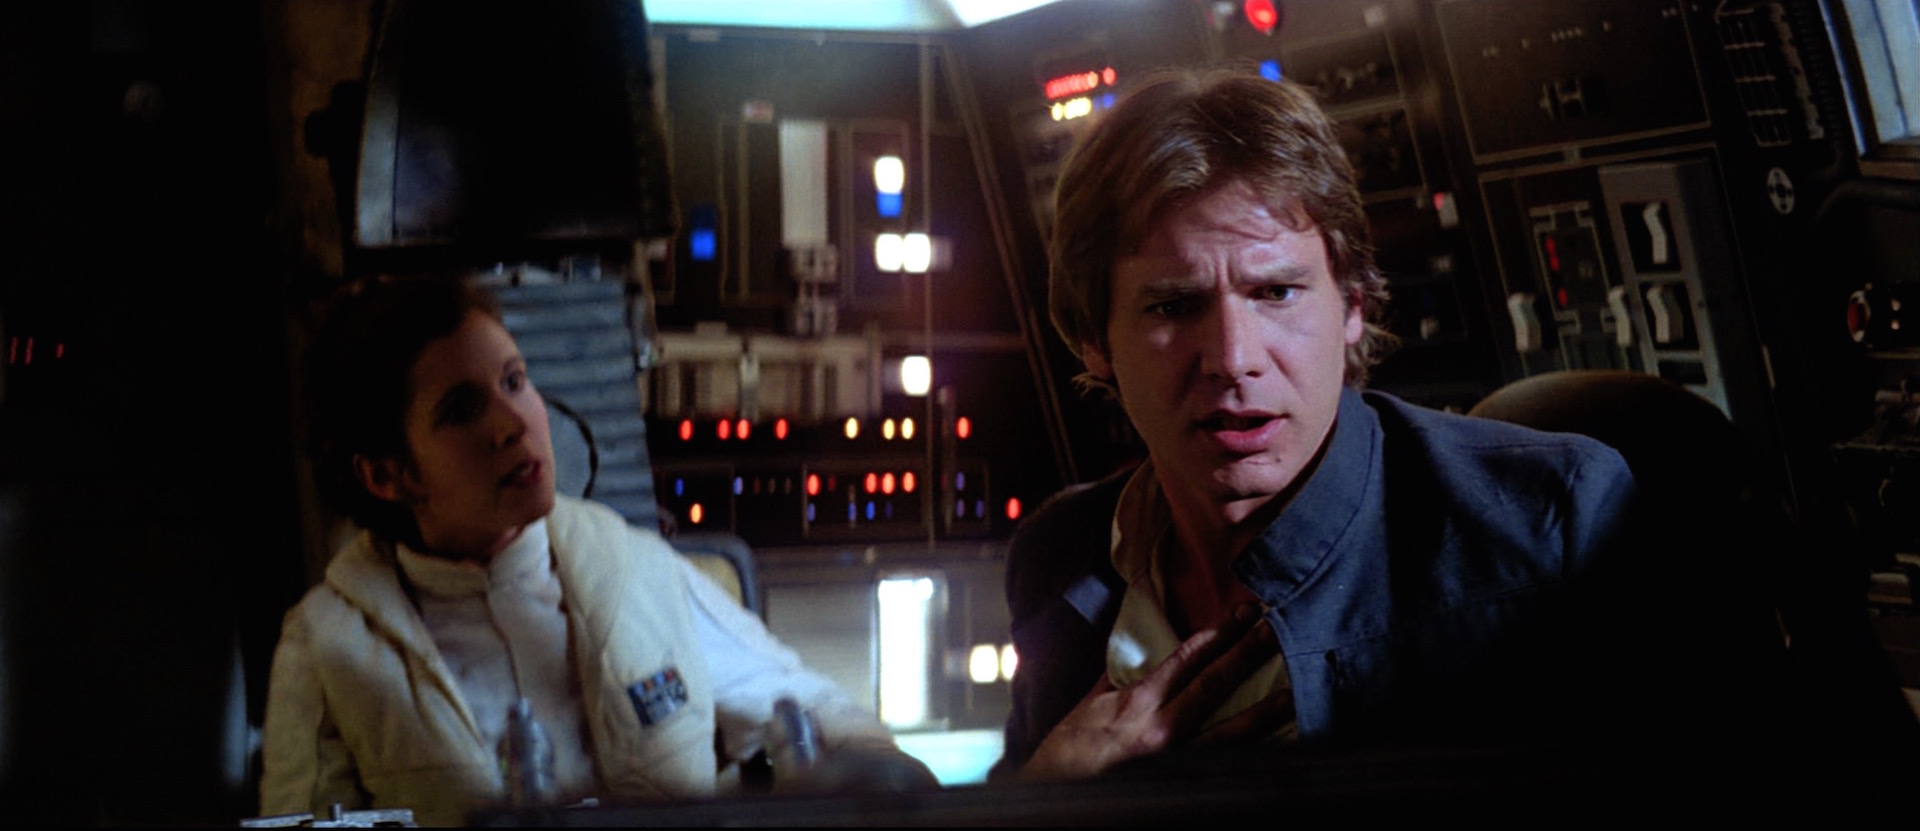 15 Star Wars Quotes To Use At Work Starwarscom